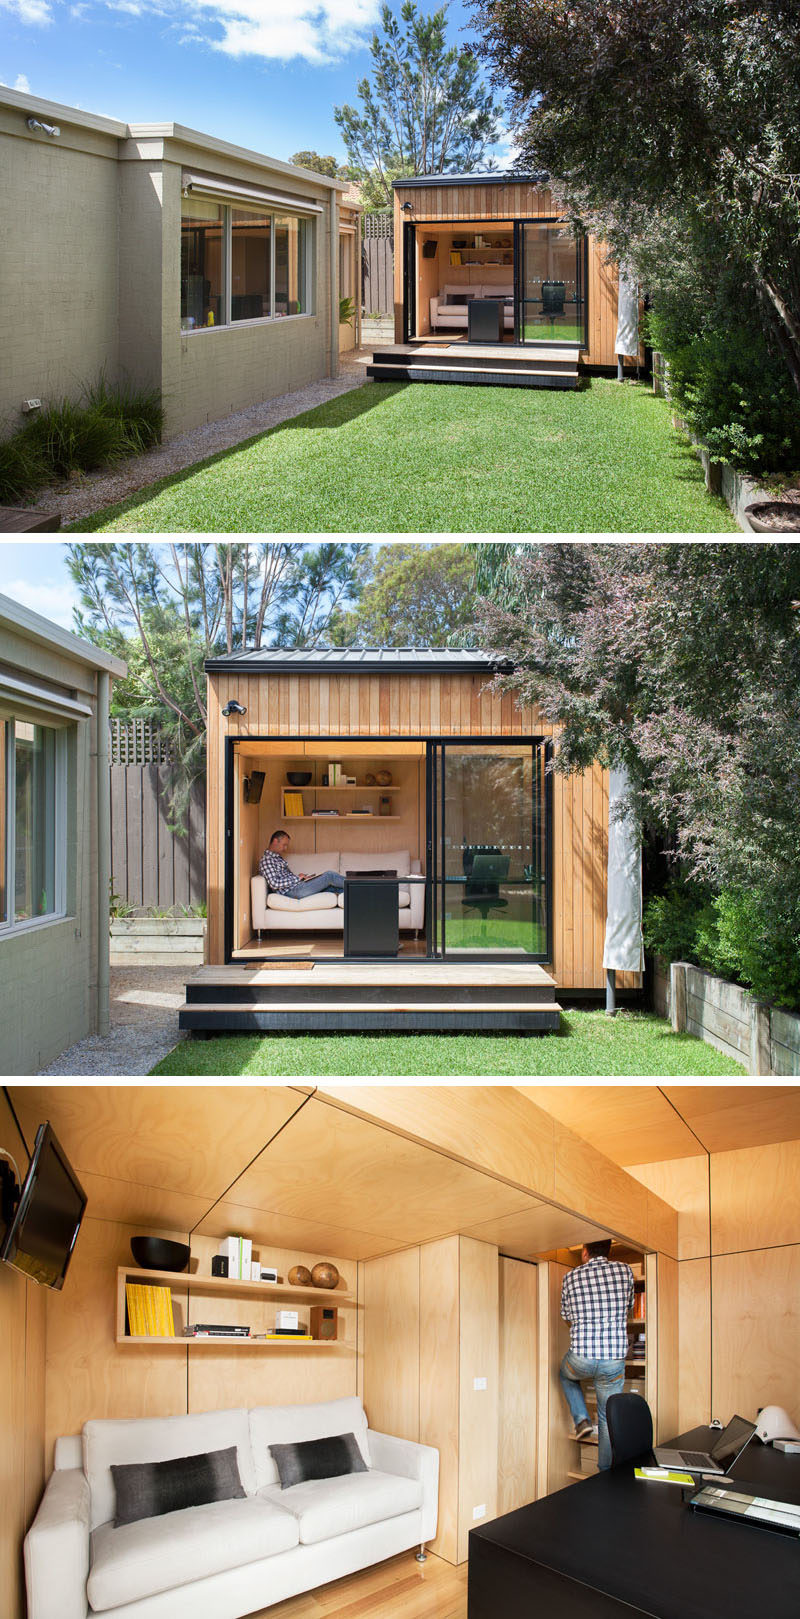 14 inspirational backyard offices studios and guest for Building a home office in backyard